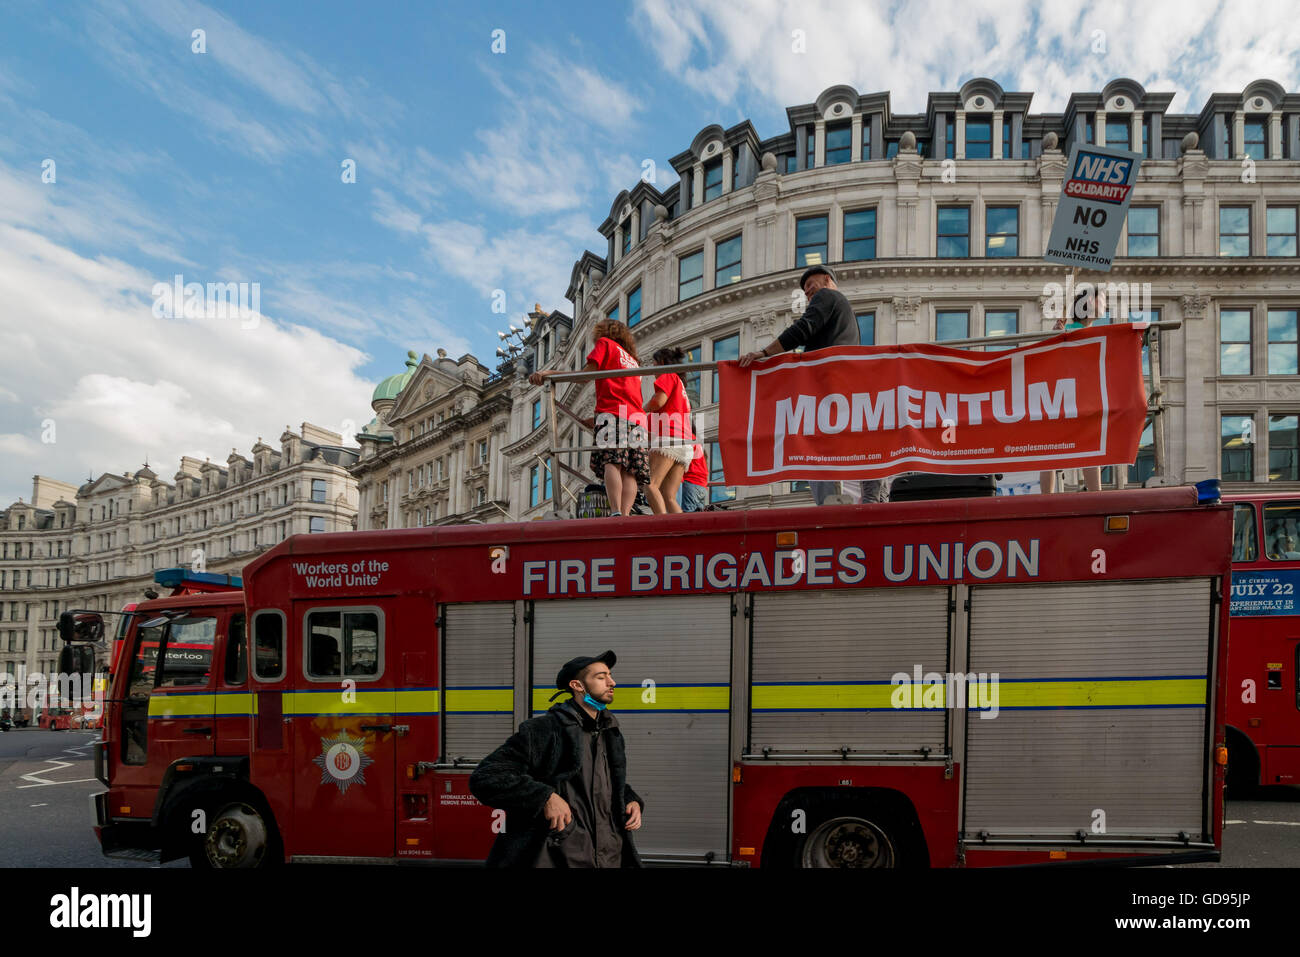 London, UK. 14th July, 2016. NHS Solidarity campaign organised protest this afternoon opposing cuts and attempts - Stock Image